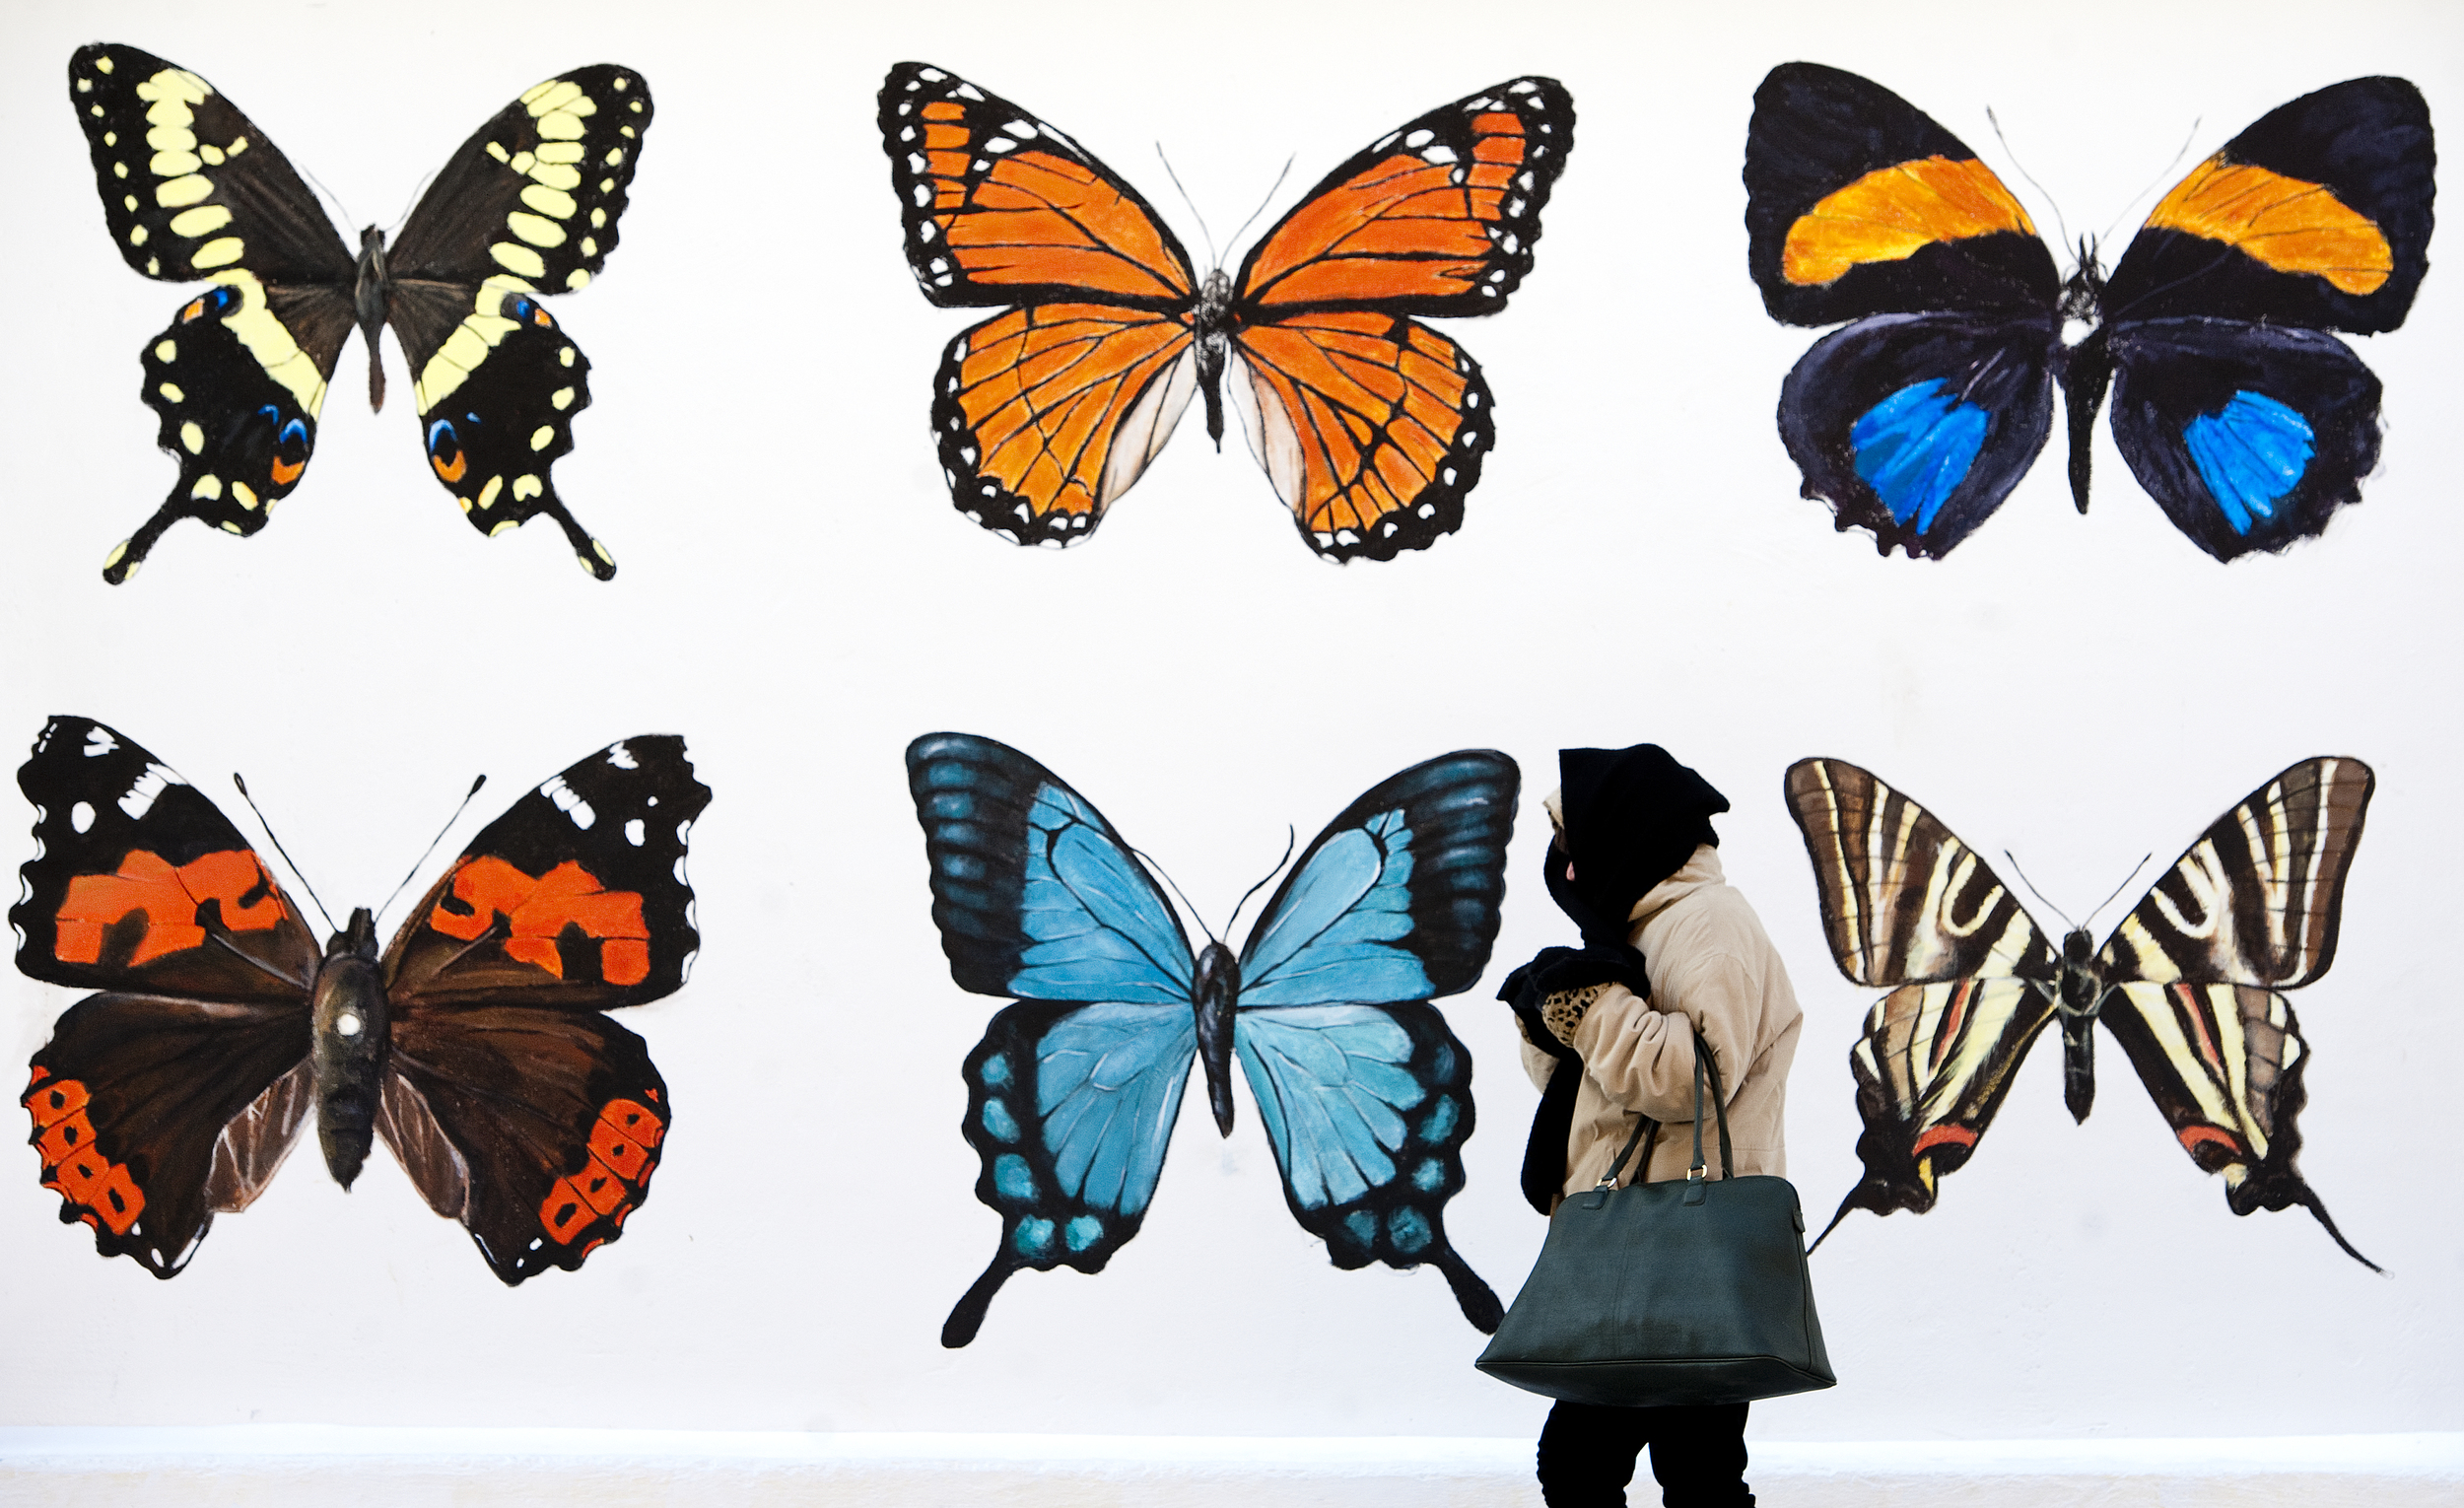 Deb Tatarka of Greensburg grasps her scarf as she walks past a butterfly mural while temperatures hover in the teens along Pennsylvania Avenue in Greensburg on Jan. 8, 2015.